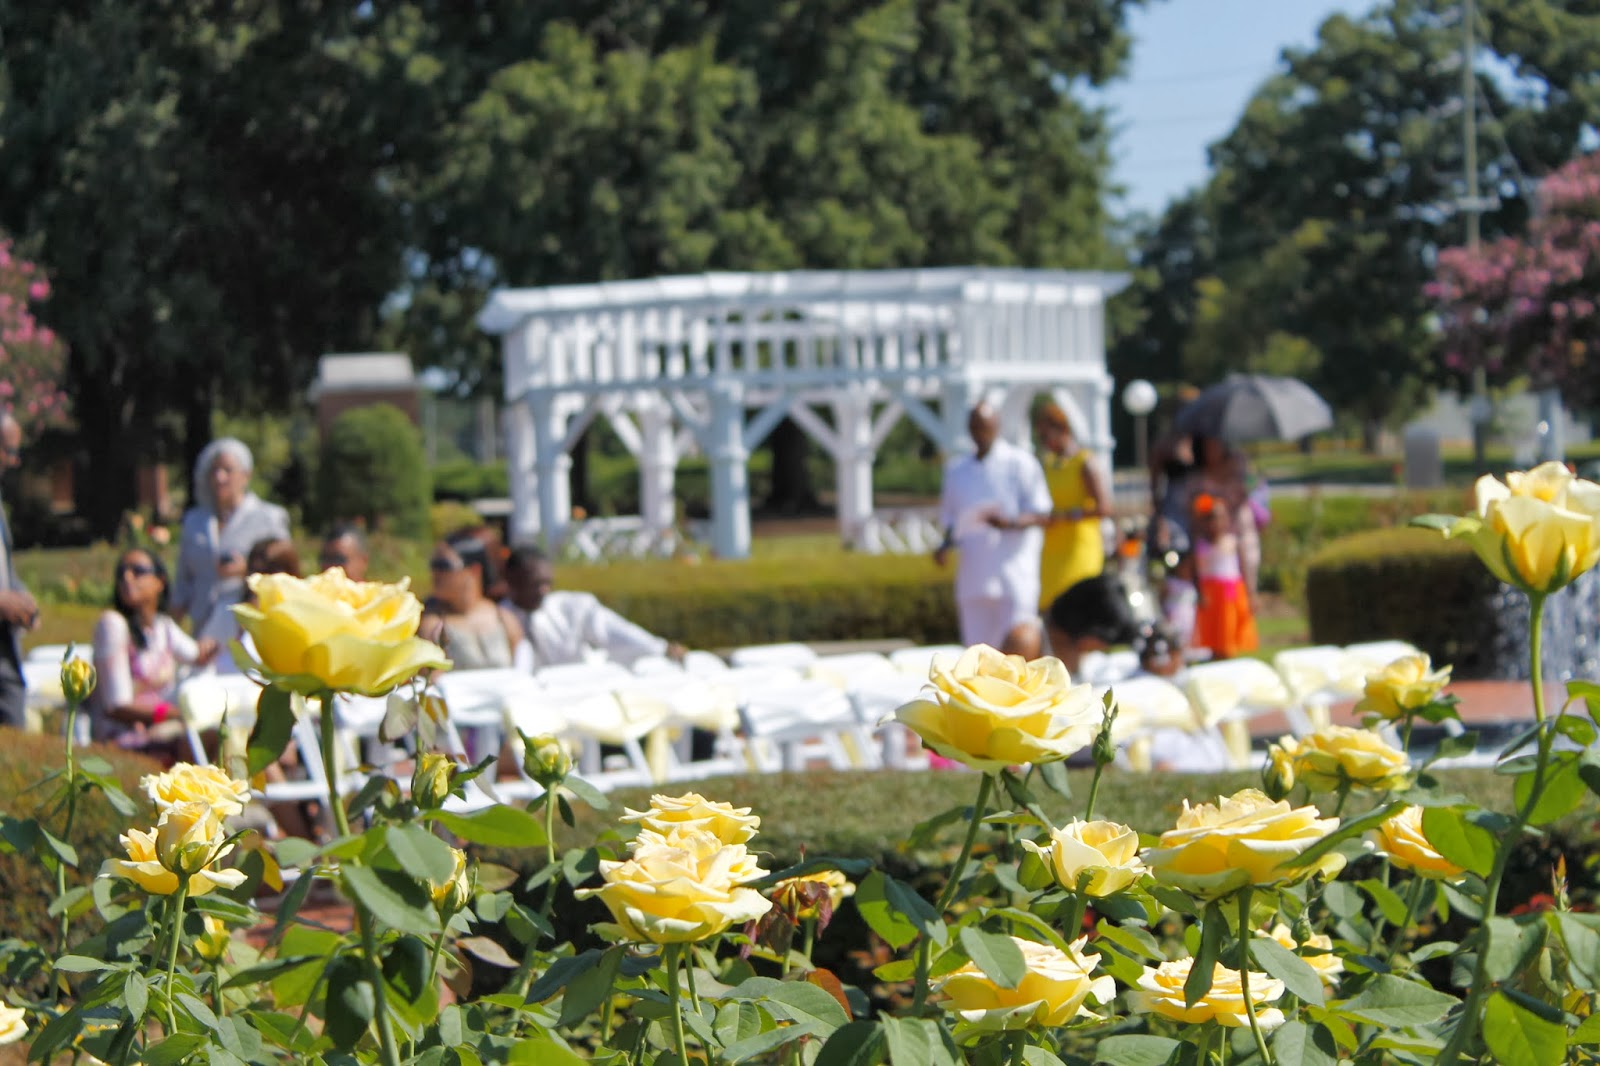 Wedding Reception Venues Fayetteville Nc Outdoor Venue In Engagement